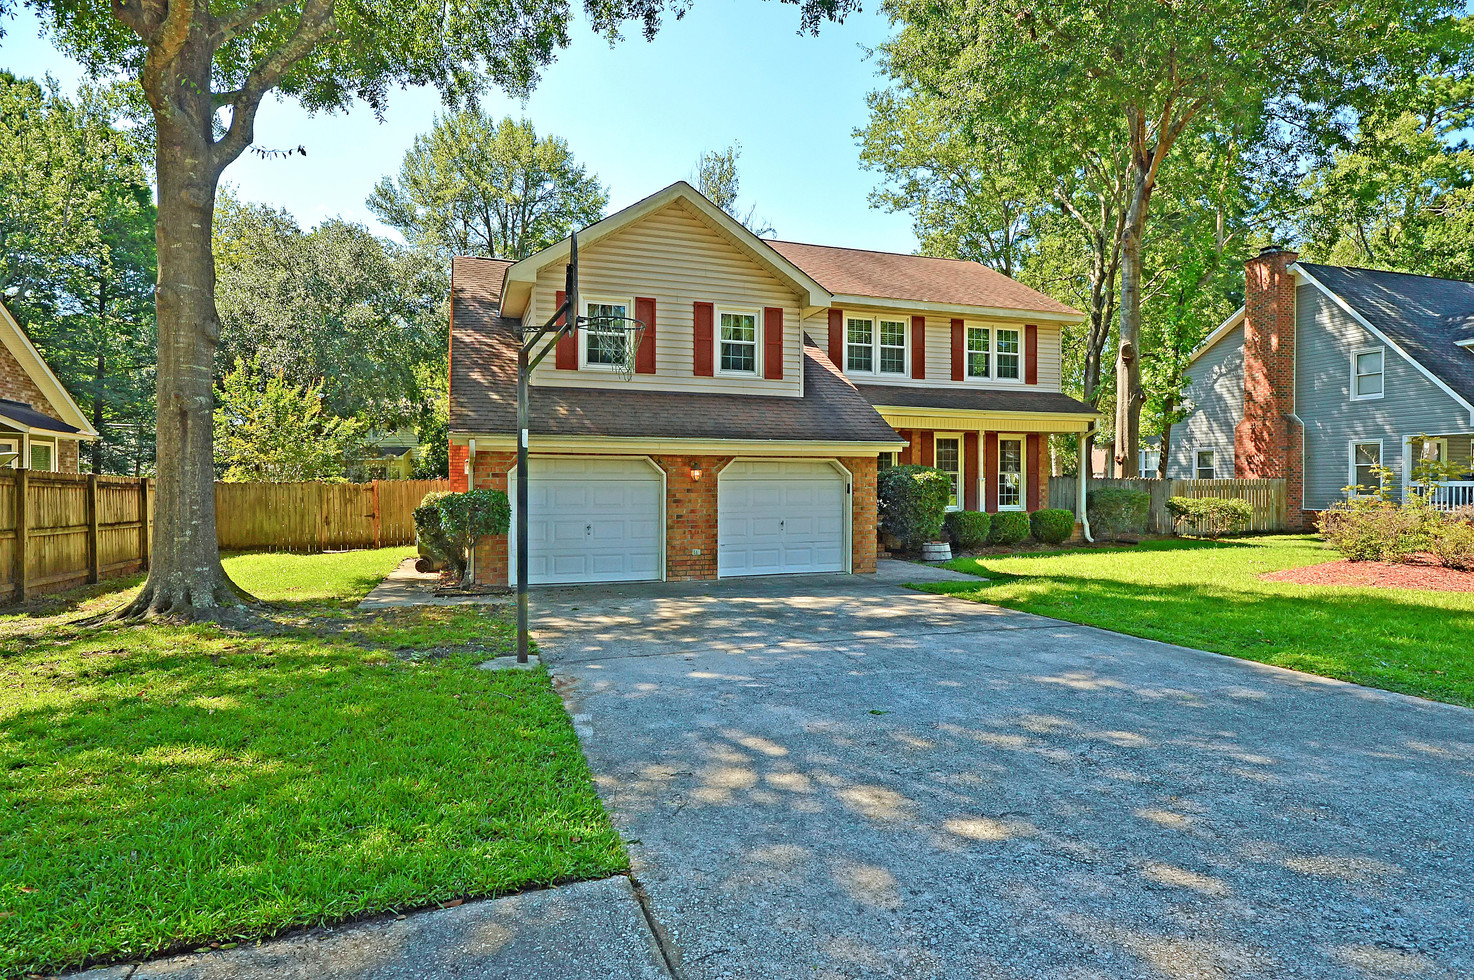 03. 323 Eastover Circle - South Pointe -